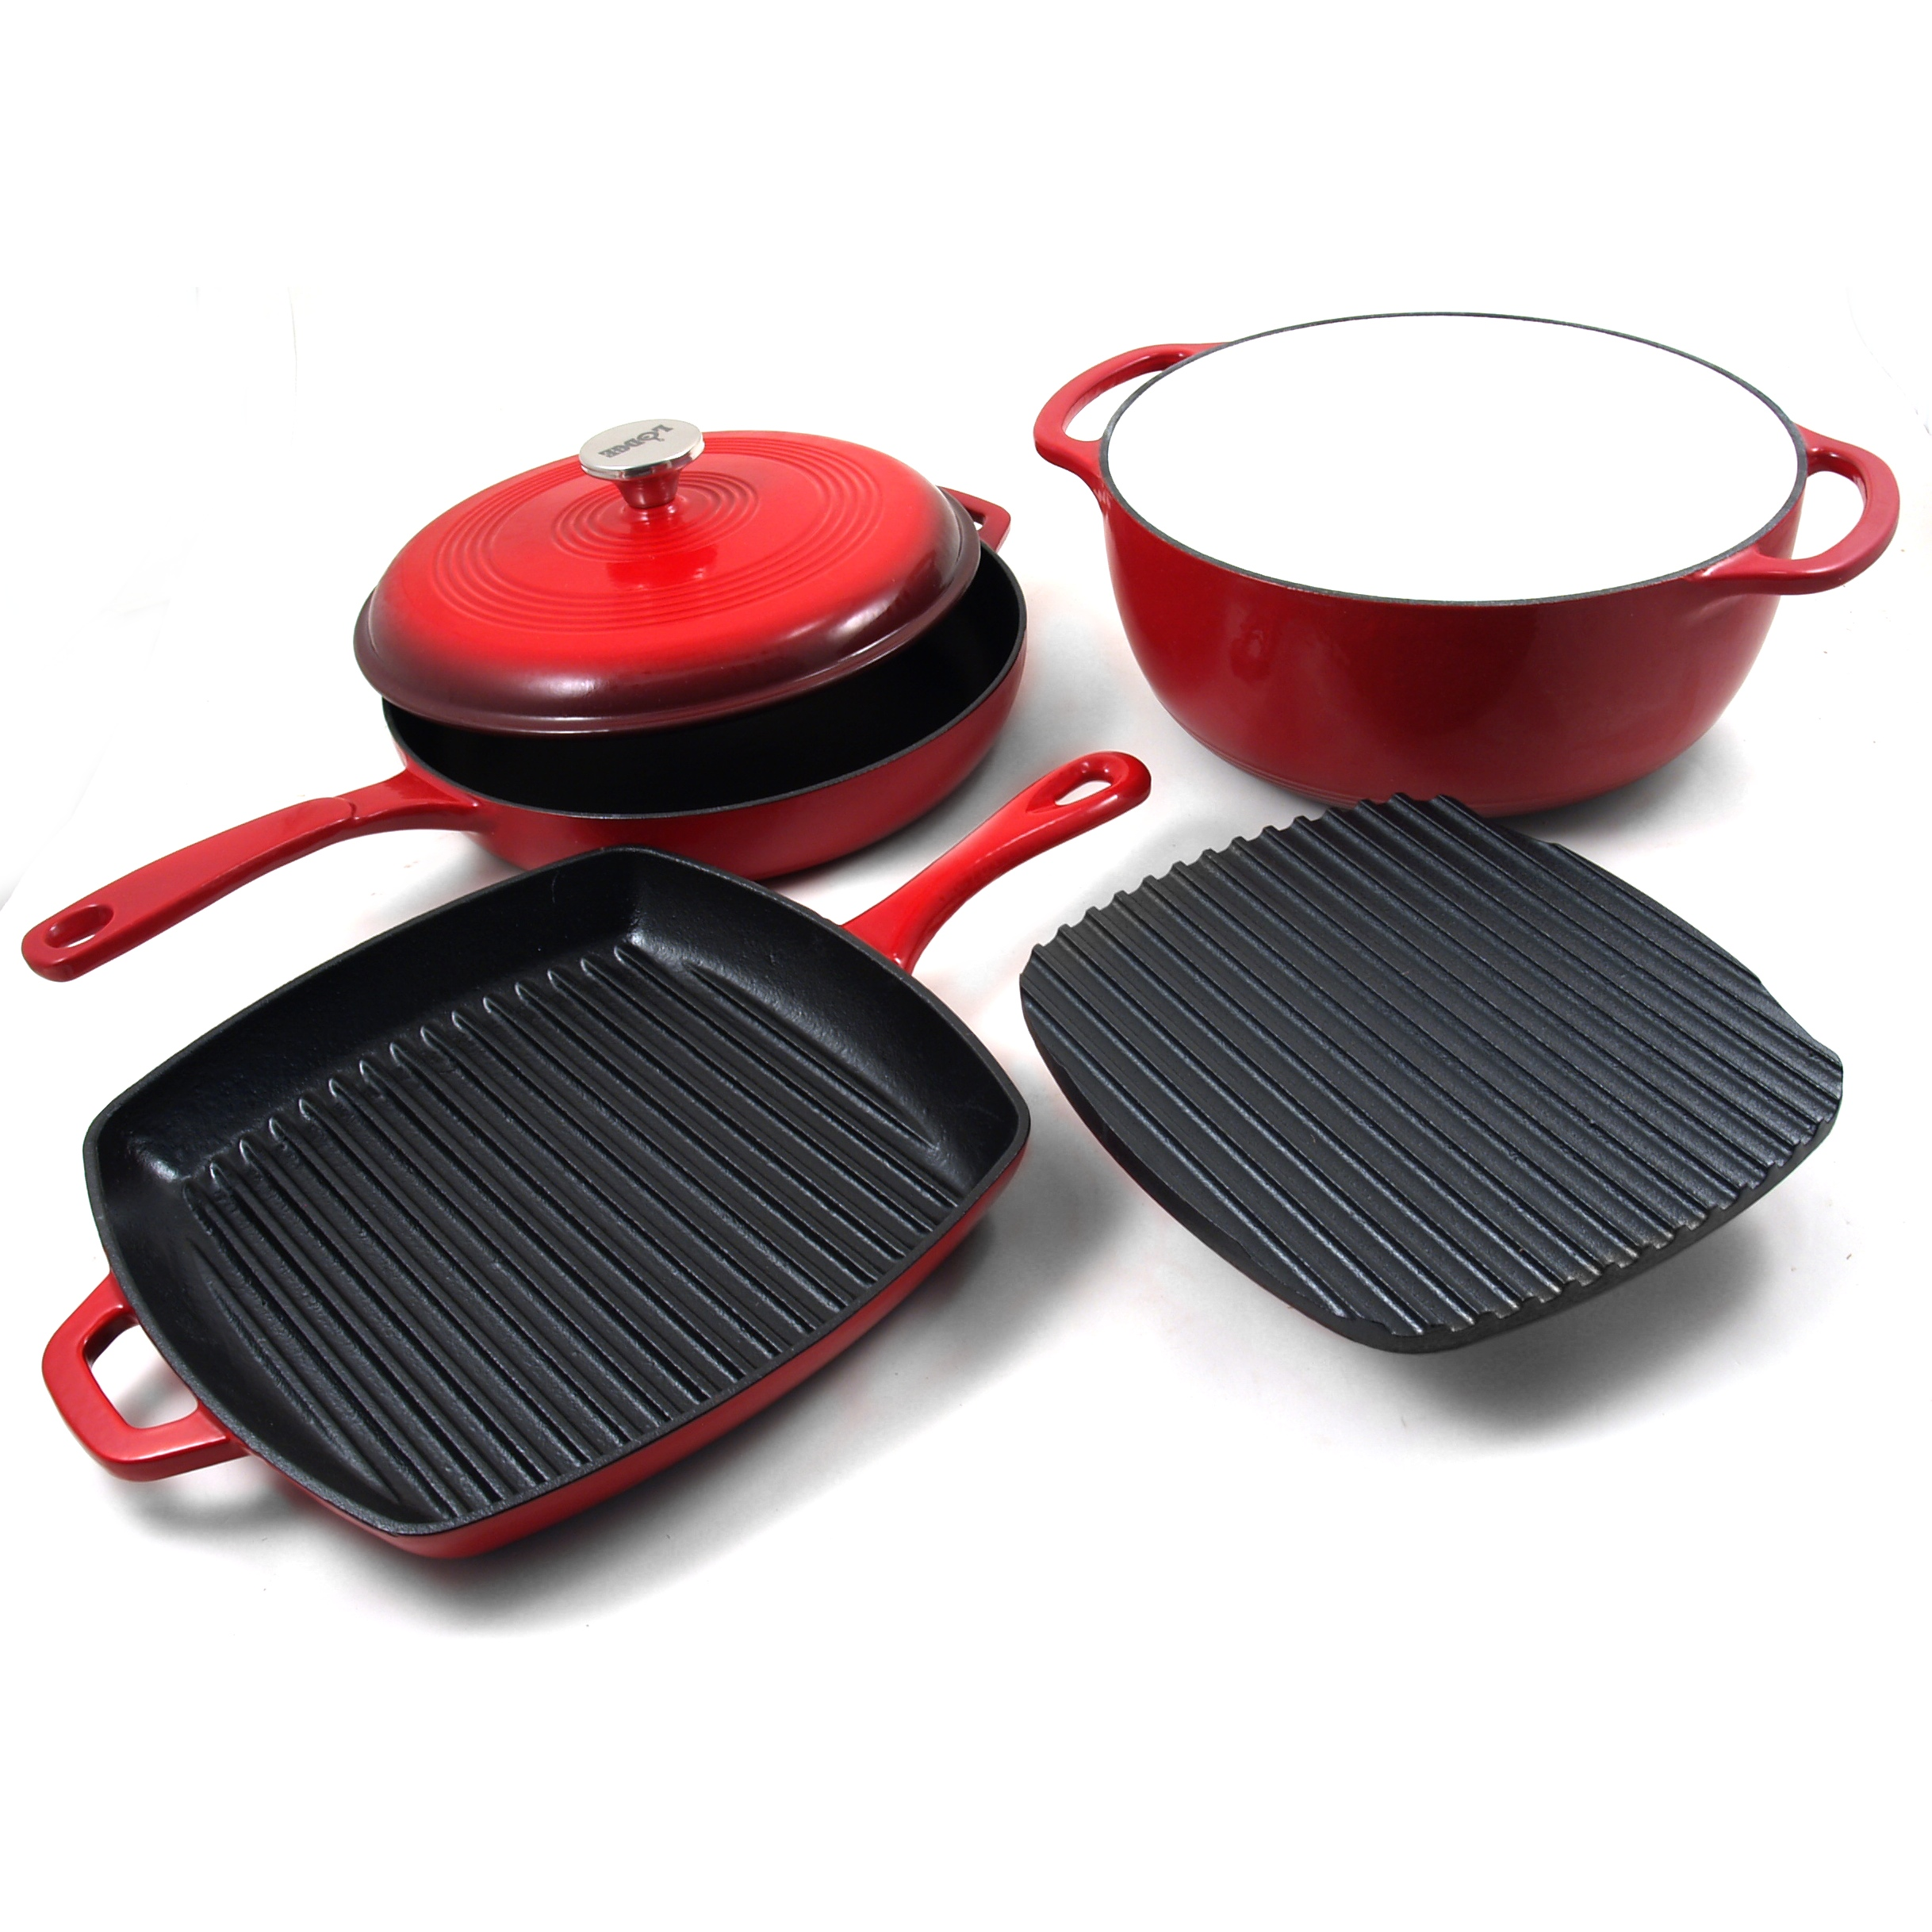 Lodge Spice Red Enameled Cast Iron 5 Piece Basic Cookware Set